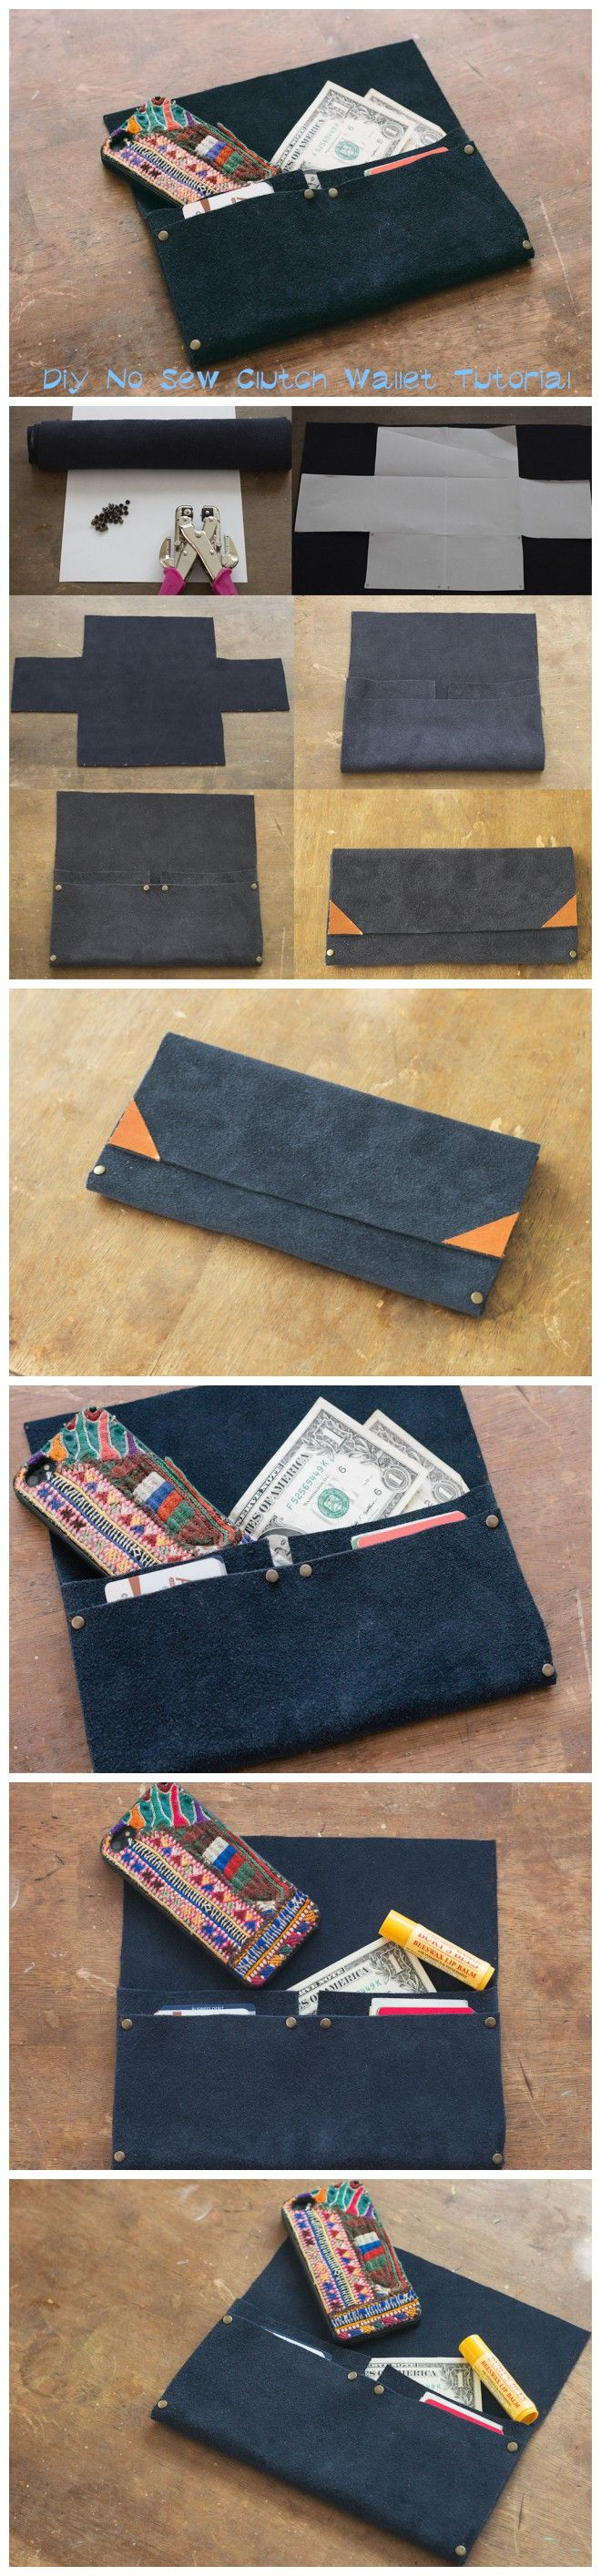 Diy No Sew Clutch Wallet Tutorial